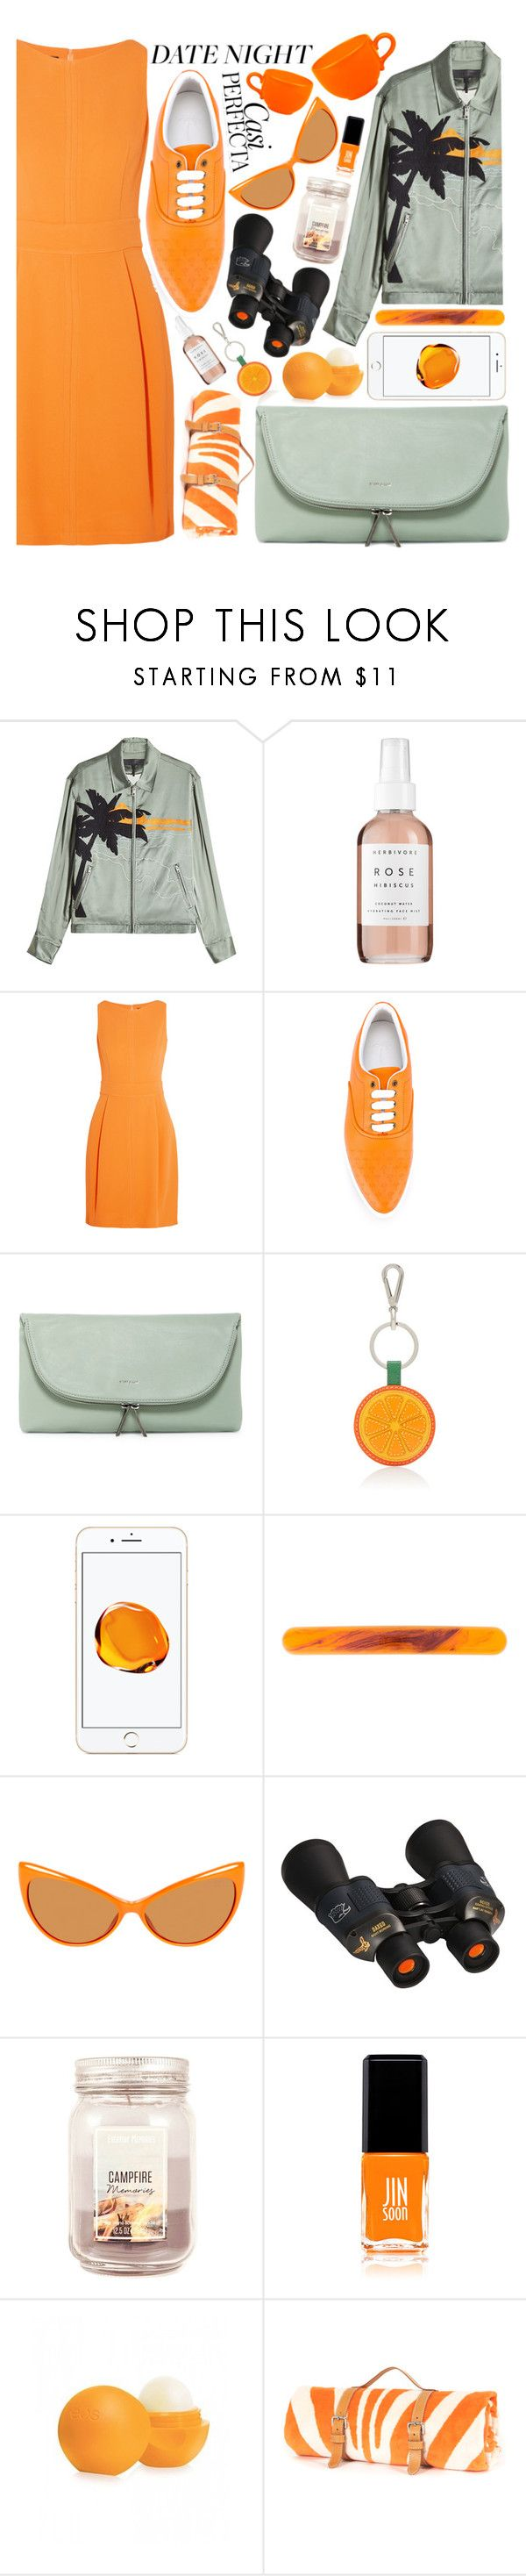 """""""Summer when you aren't lonely"""" by sugaplump ❤ liked on Polyvore featuring rag & bone, Herbivore, Raoul, Tomas Maier, Matt & Nat, Whiteley, Barneys New York, THEATRE PRODUCTS, Tom Ford and JINsoon"""